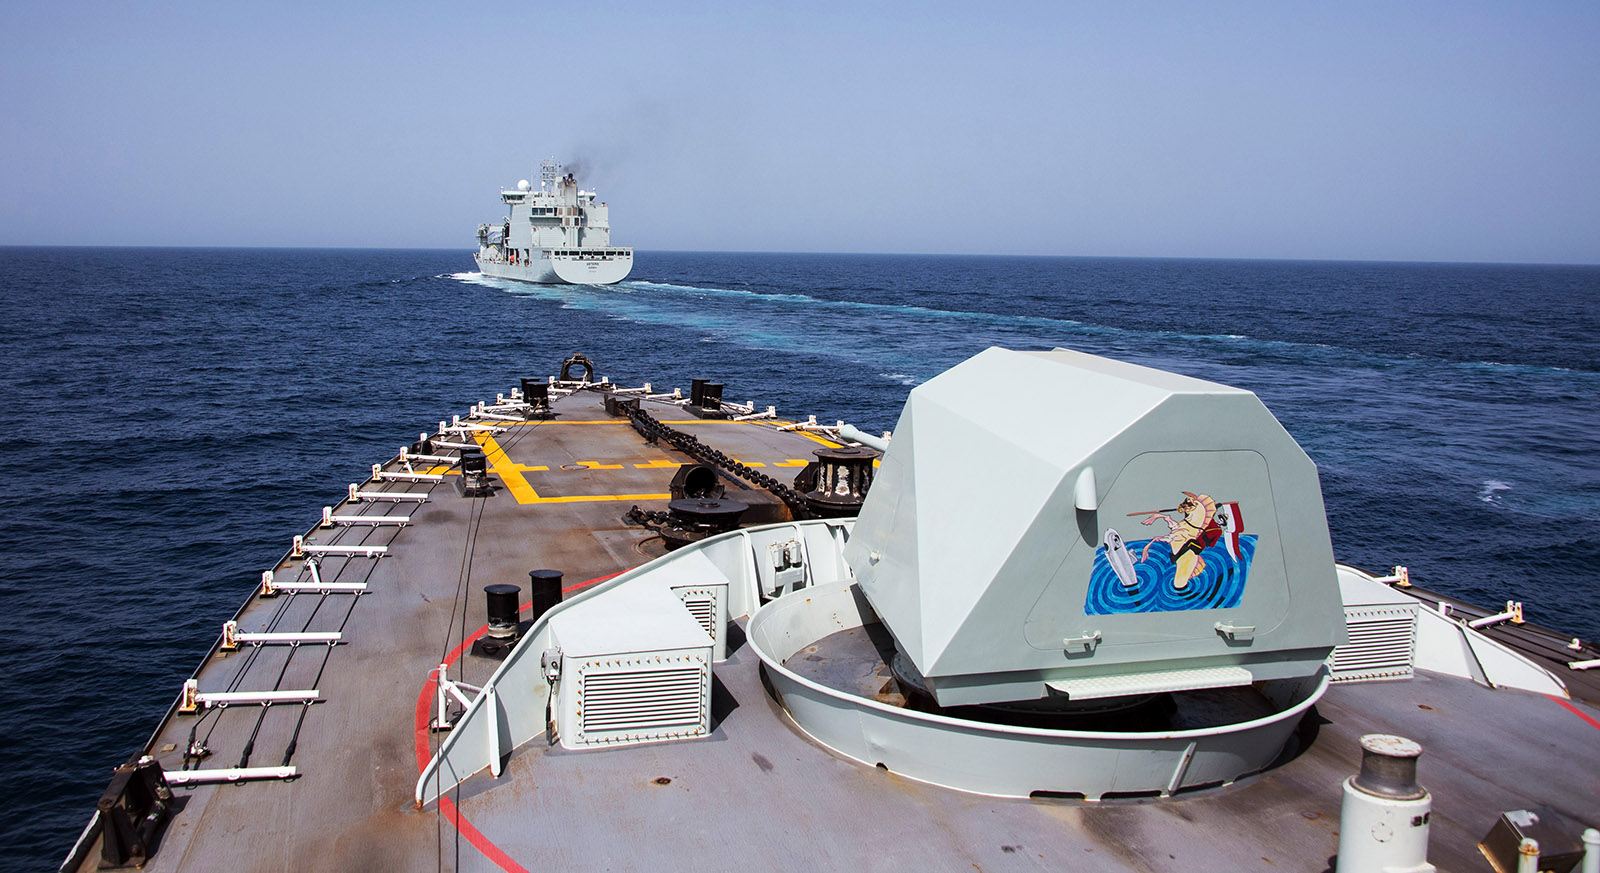 HMCS Regina and NRU Asterix conduct a replenishment at sea during Operation ARTEMIS in the Indian Ocean on May 1, 2019.